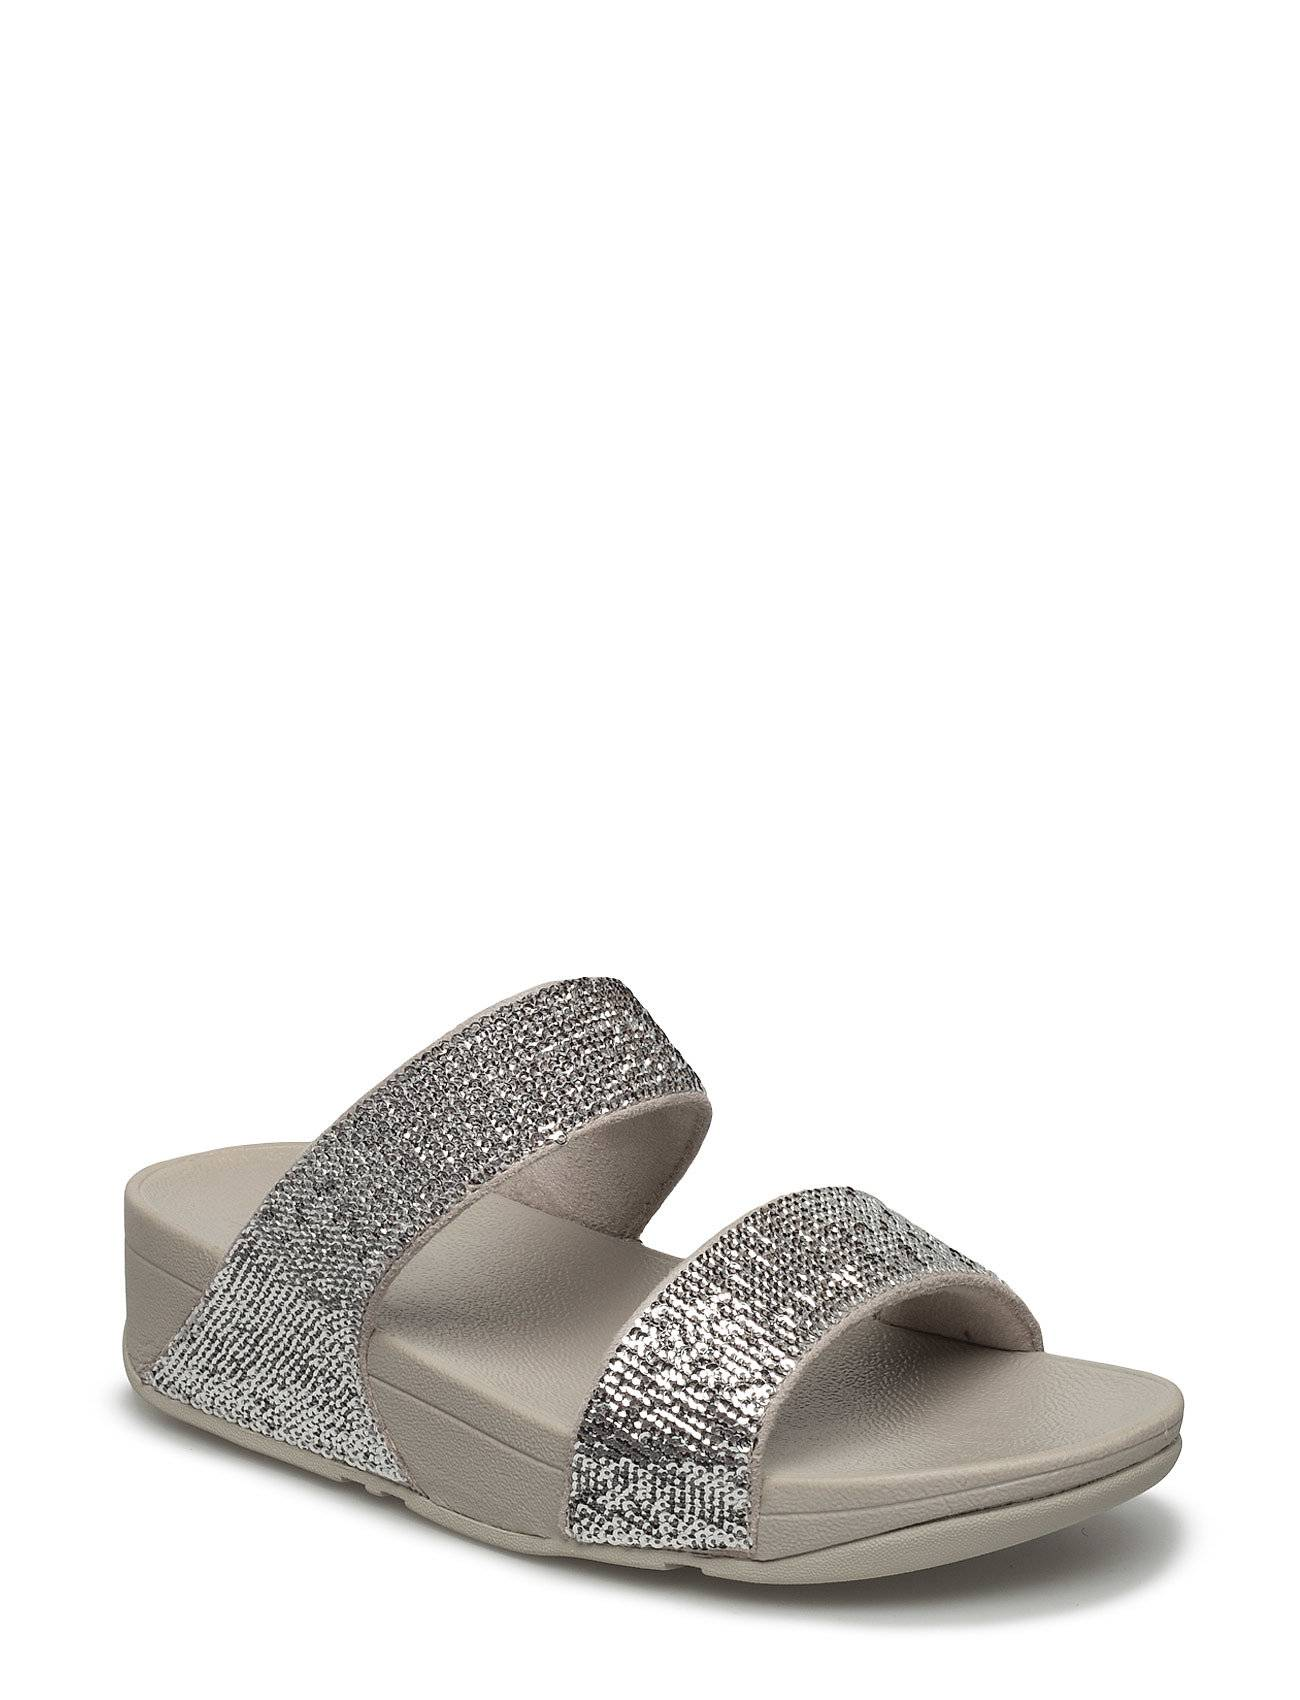 FitFlop Electra Micro Slide